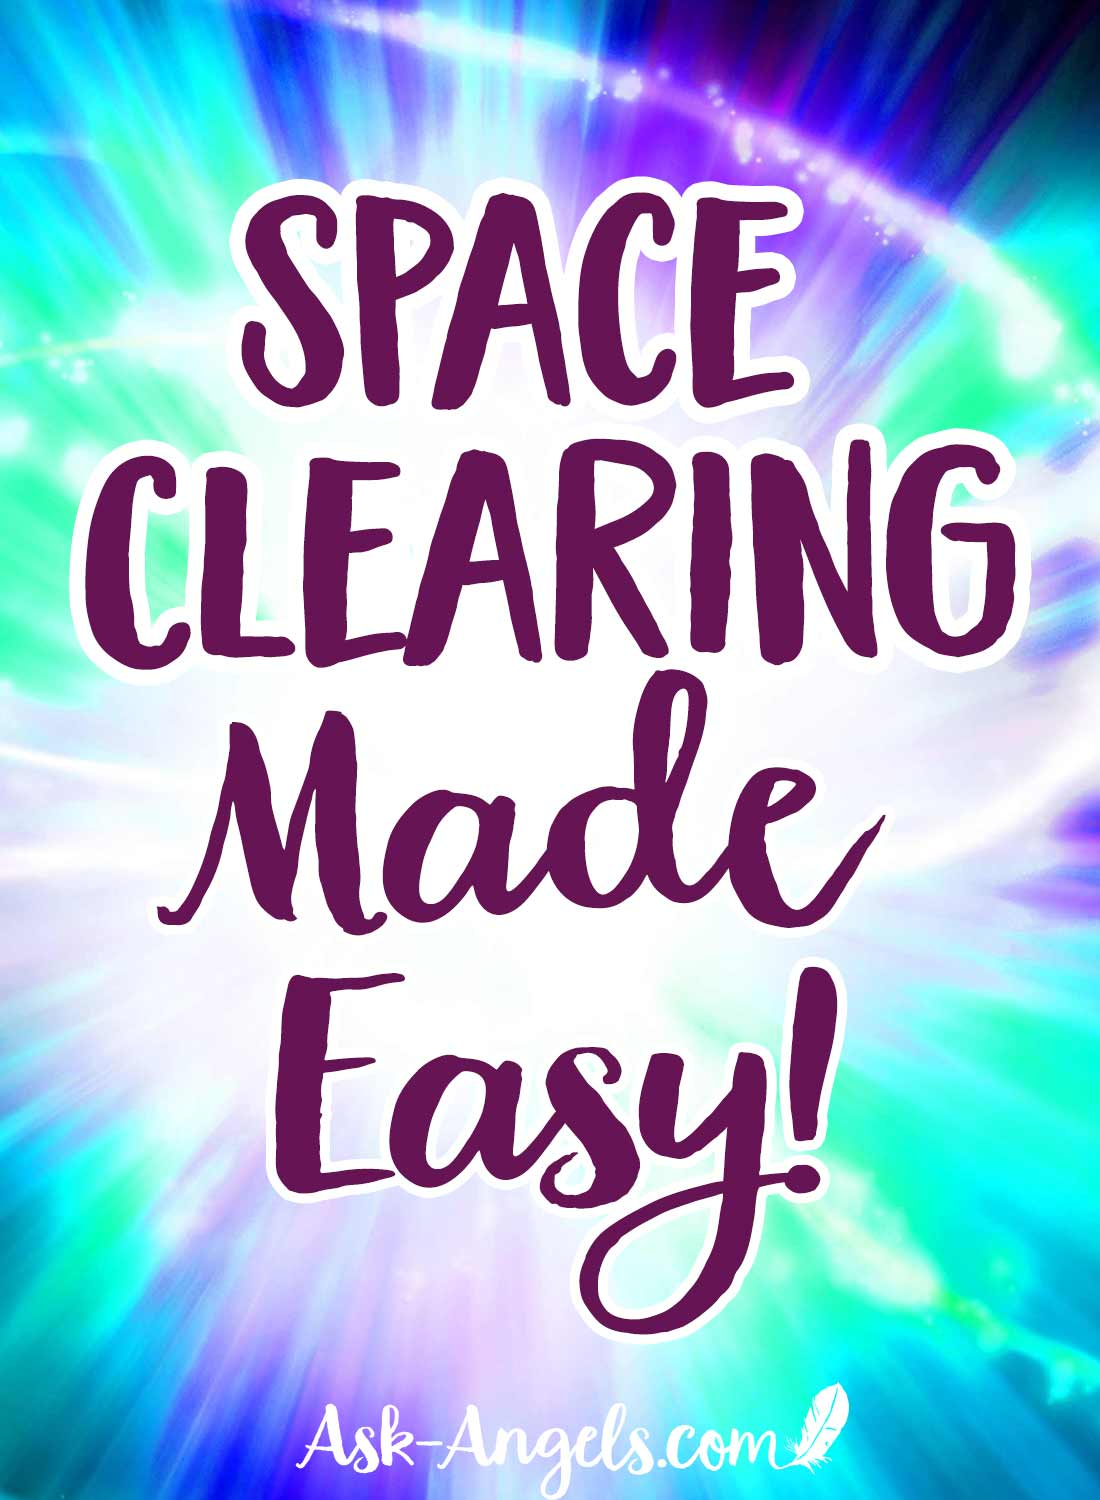 Space Clearing Made Easy!